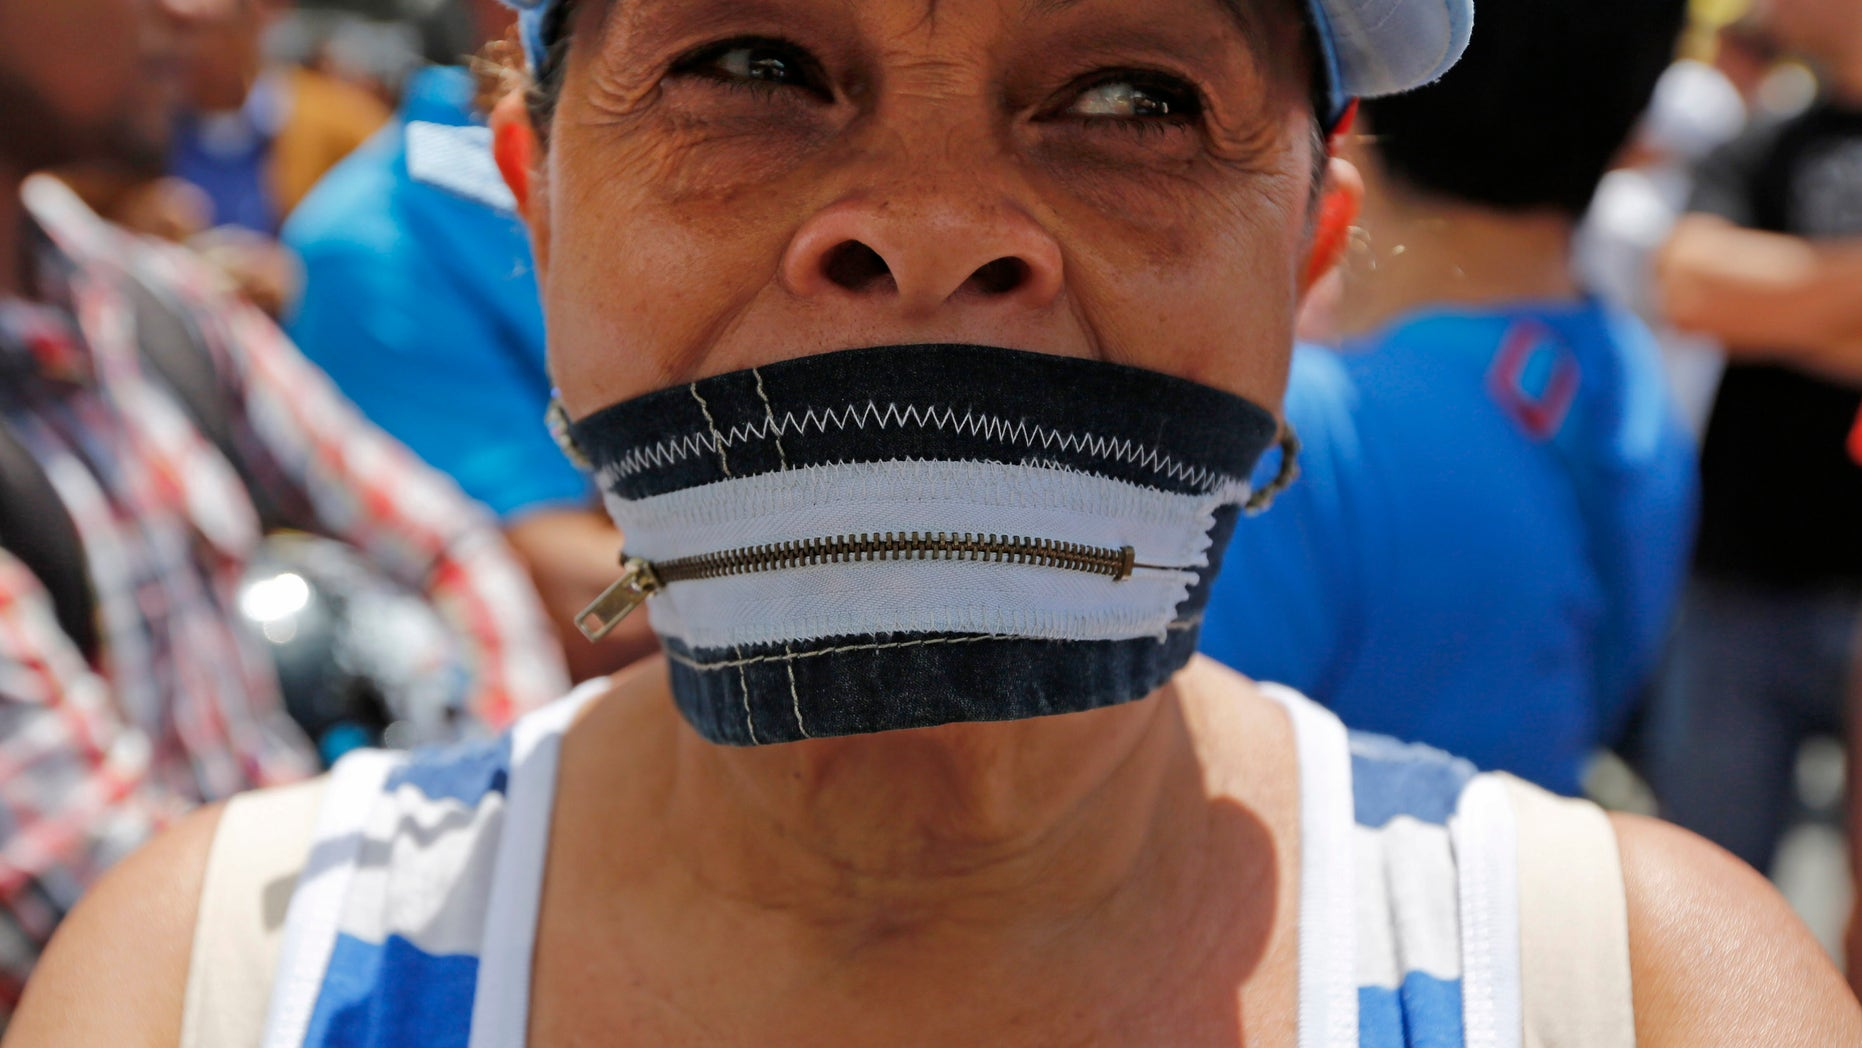 A protester wears a zipper over her mouth at a demonstration demanding the release of Metropolitan Mayor Antonio Ledezma in Caracas, Venezuela, Friday, Feb. 20, 2015. Demonstrators are condemning last night's surprise arrest of the Caracas' mayor for allegedly plotting to overthrow the government of President Nicolas Maduro. Late Thursday Maduro said that Ledezma, one of the most vocal opposition leaders, would be punished for trying to sow unrest in Venezuela. (AP Photo/Ariana Cubillos)